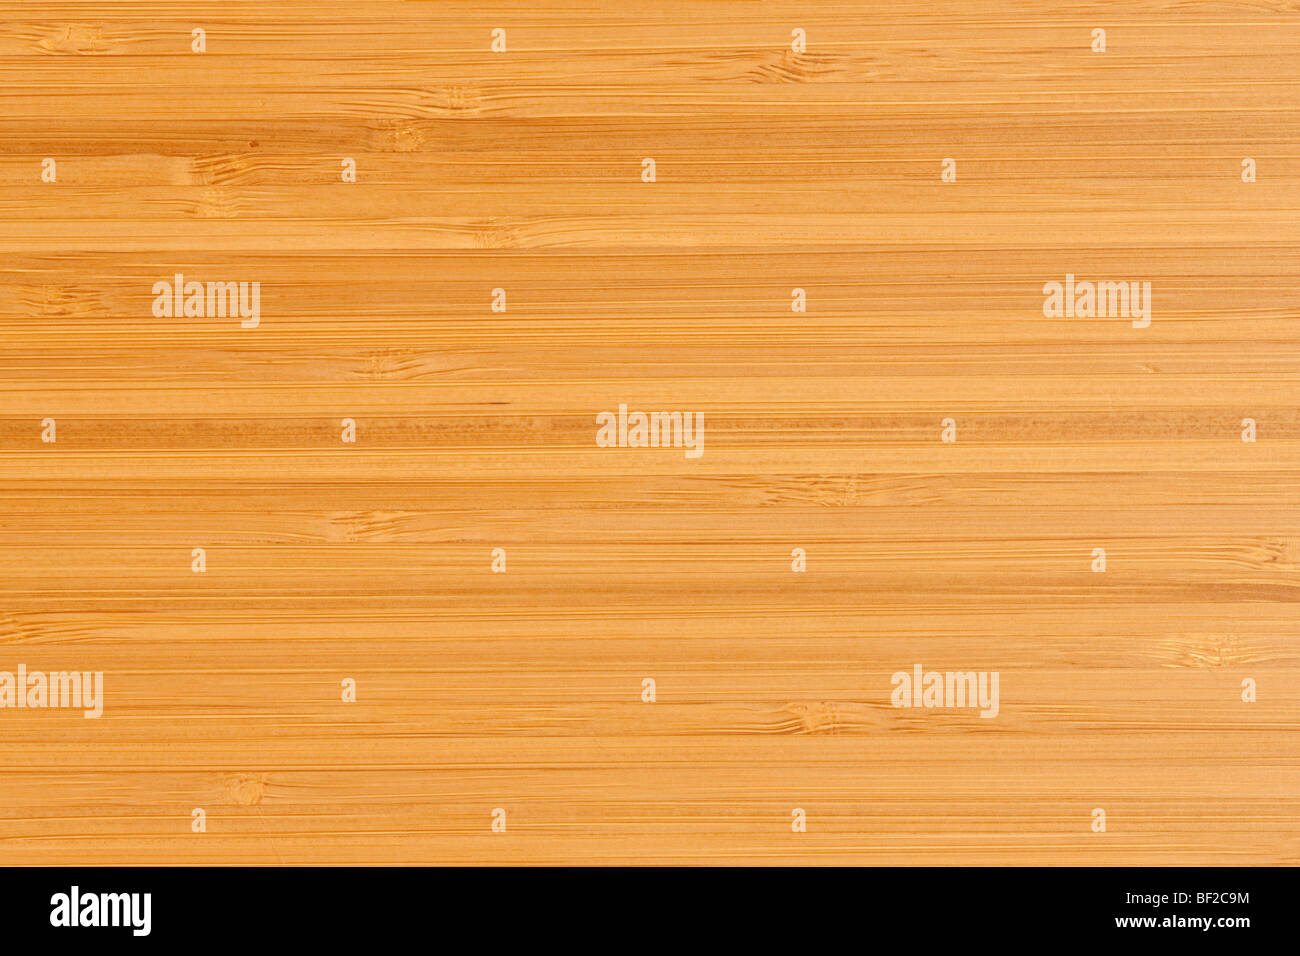 Bamboo background board. horizontal pattern - Stock Image